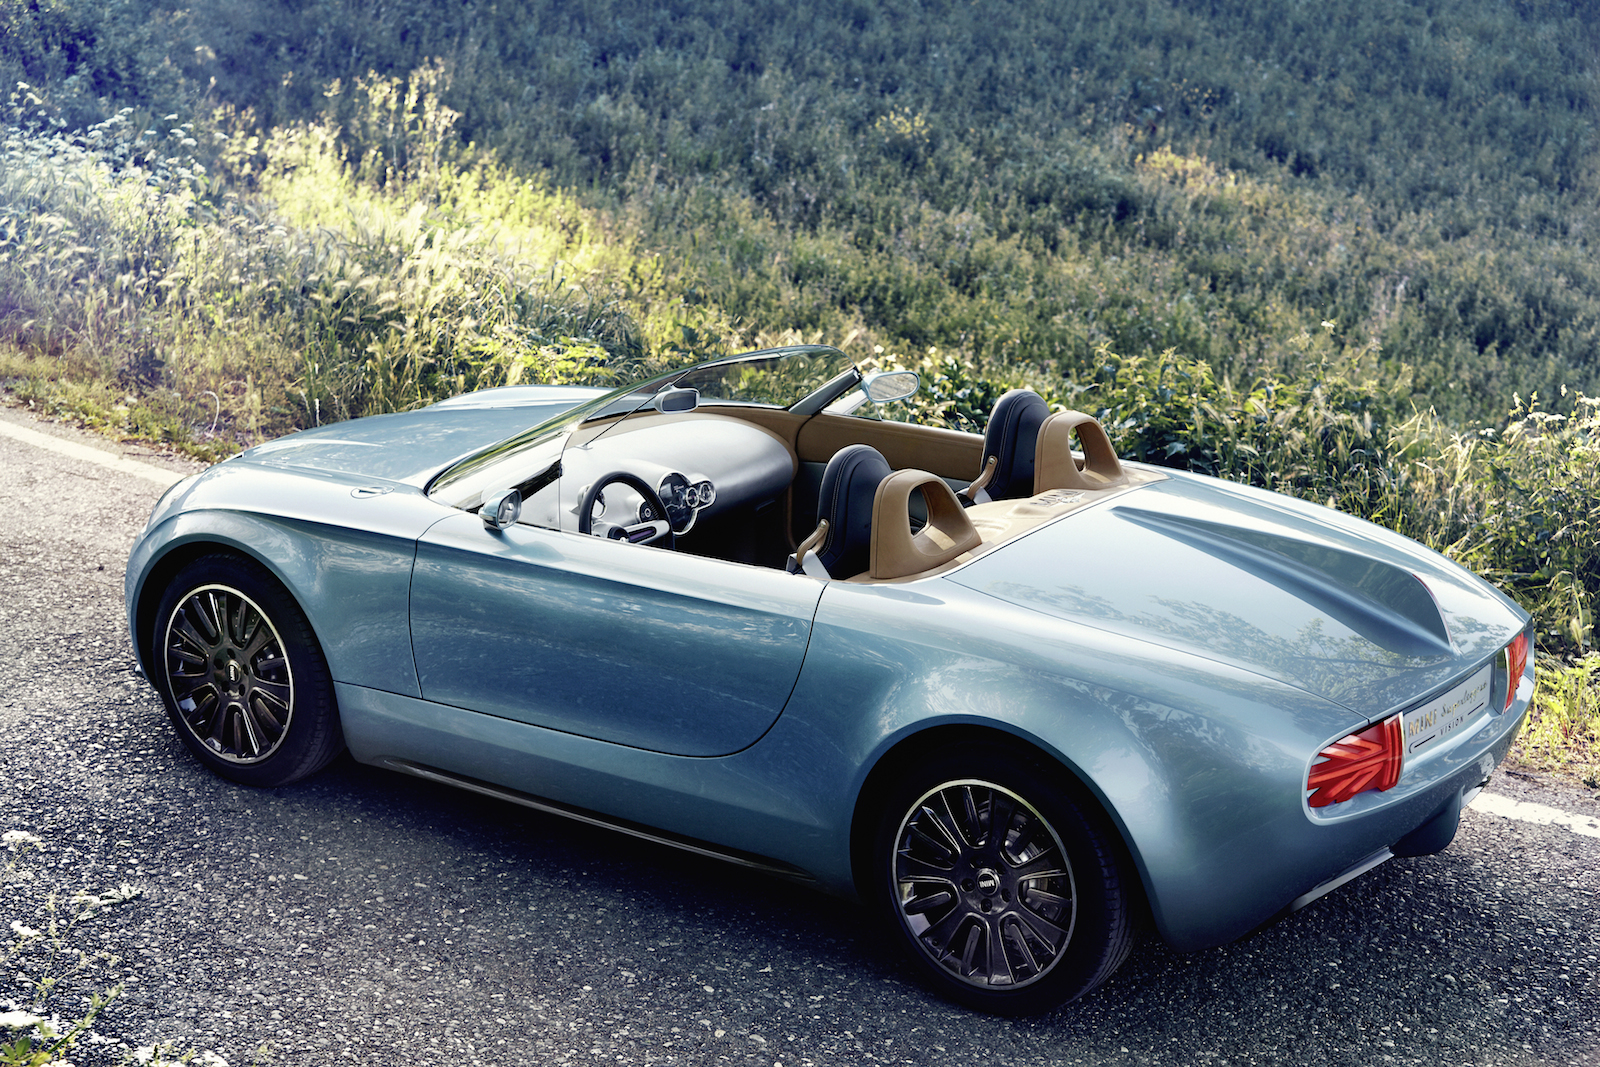 MINI Sports Car Based On Superleggera Concept Coming In 2019 Report